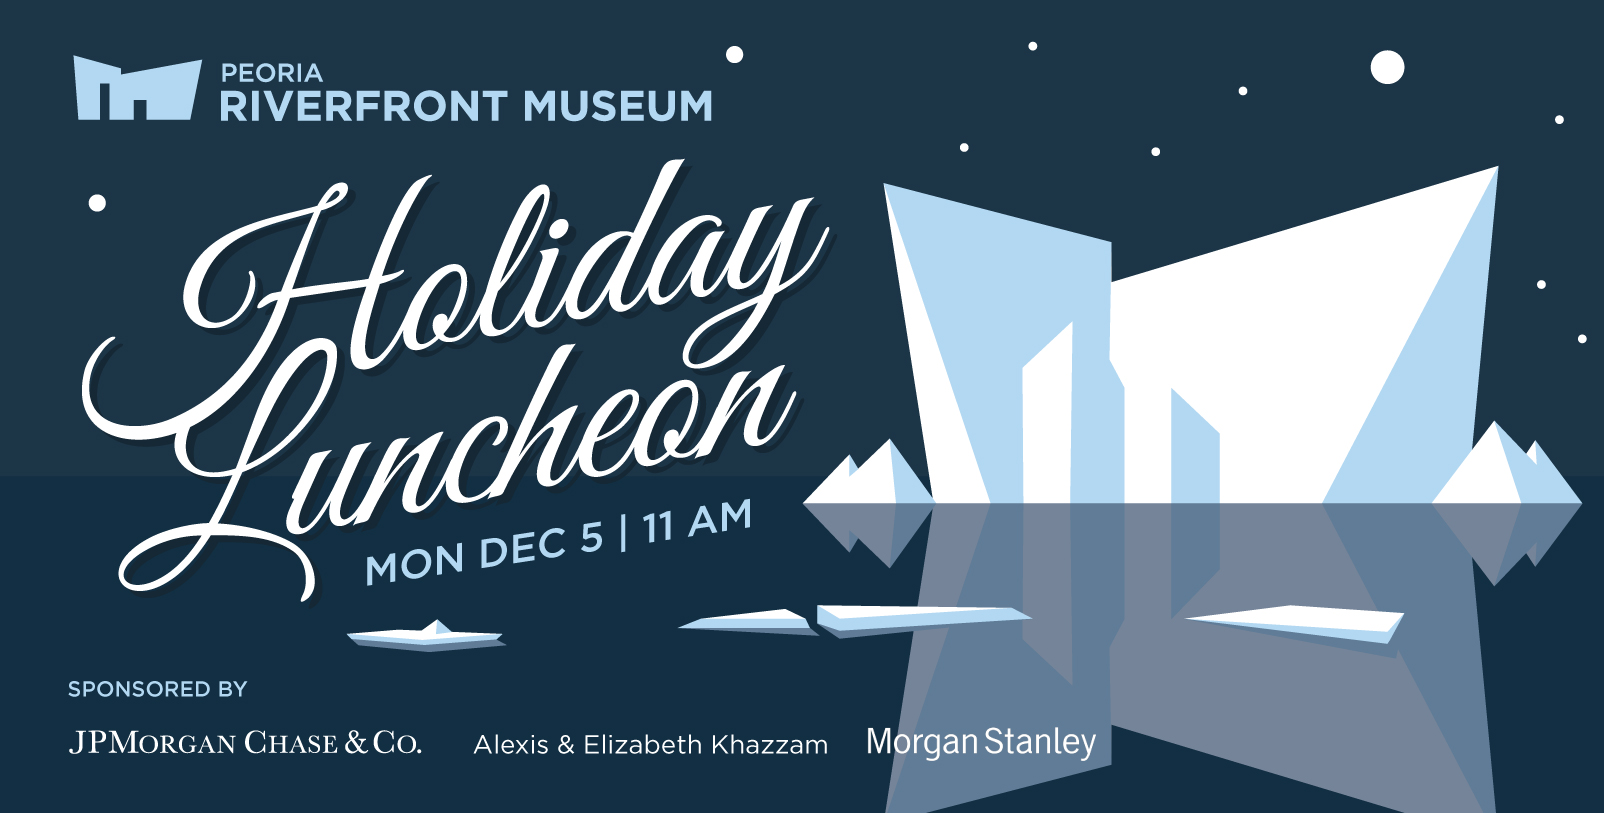 Holiday Luncheon Web Banner 2016 1604x813px 01